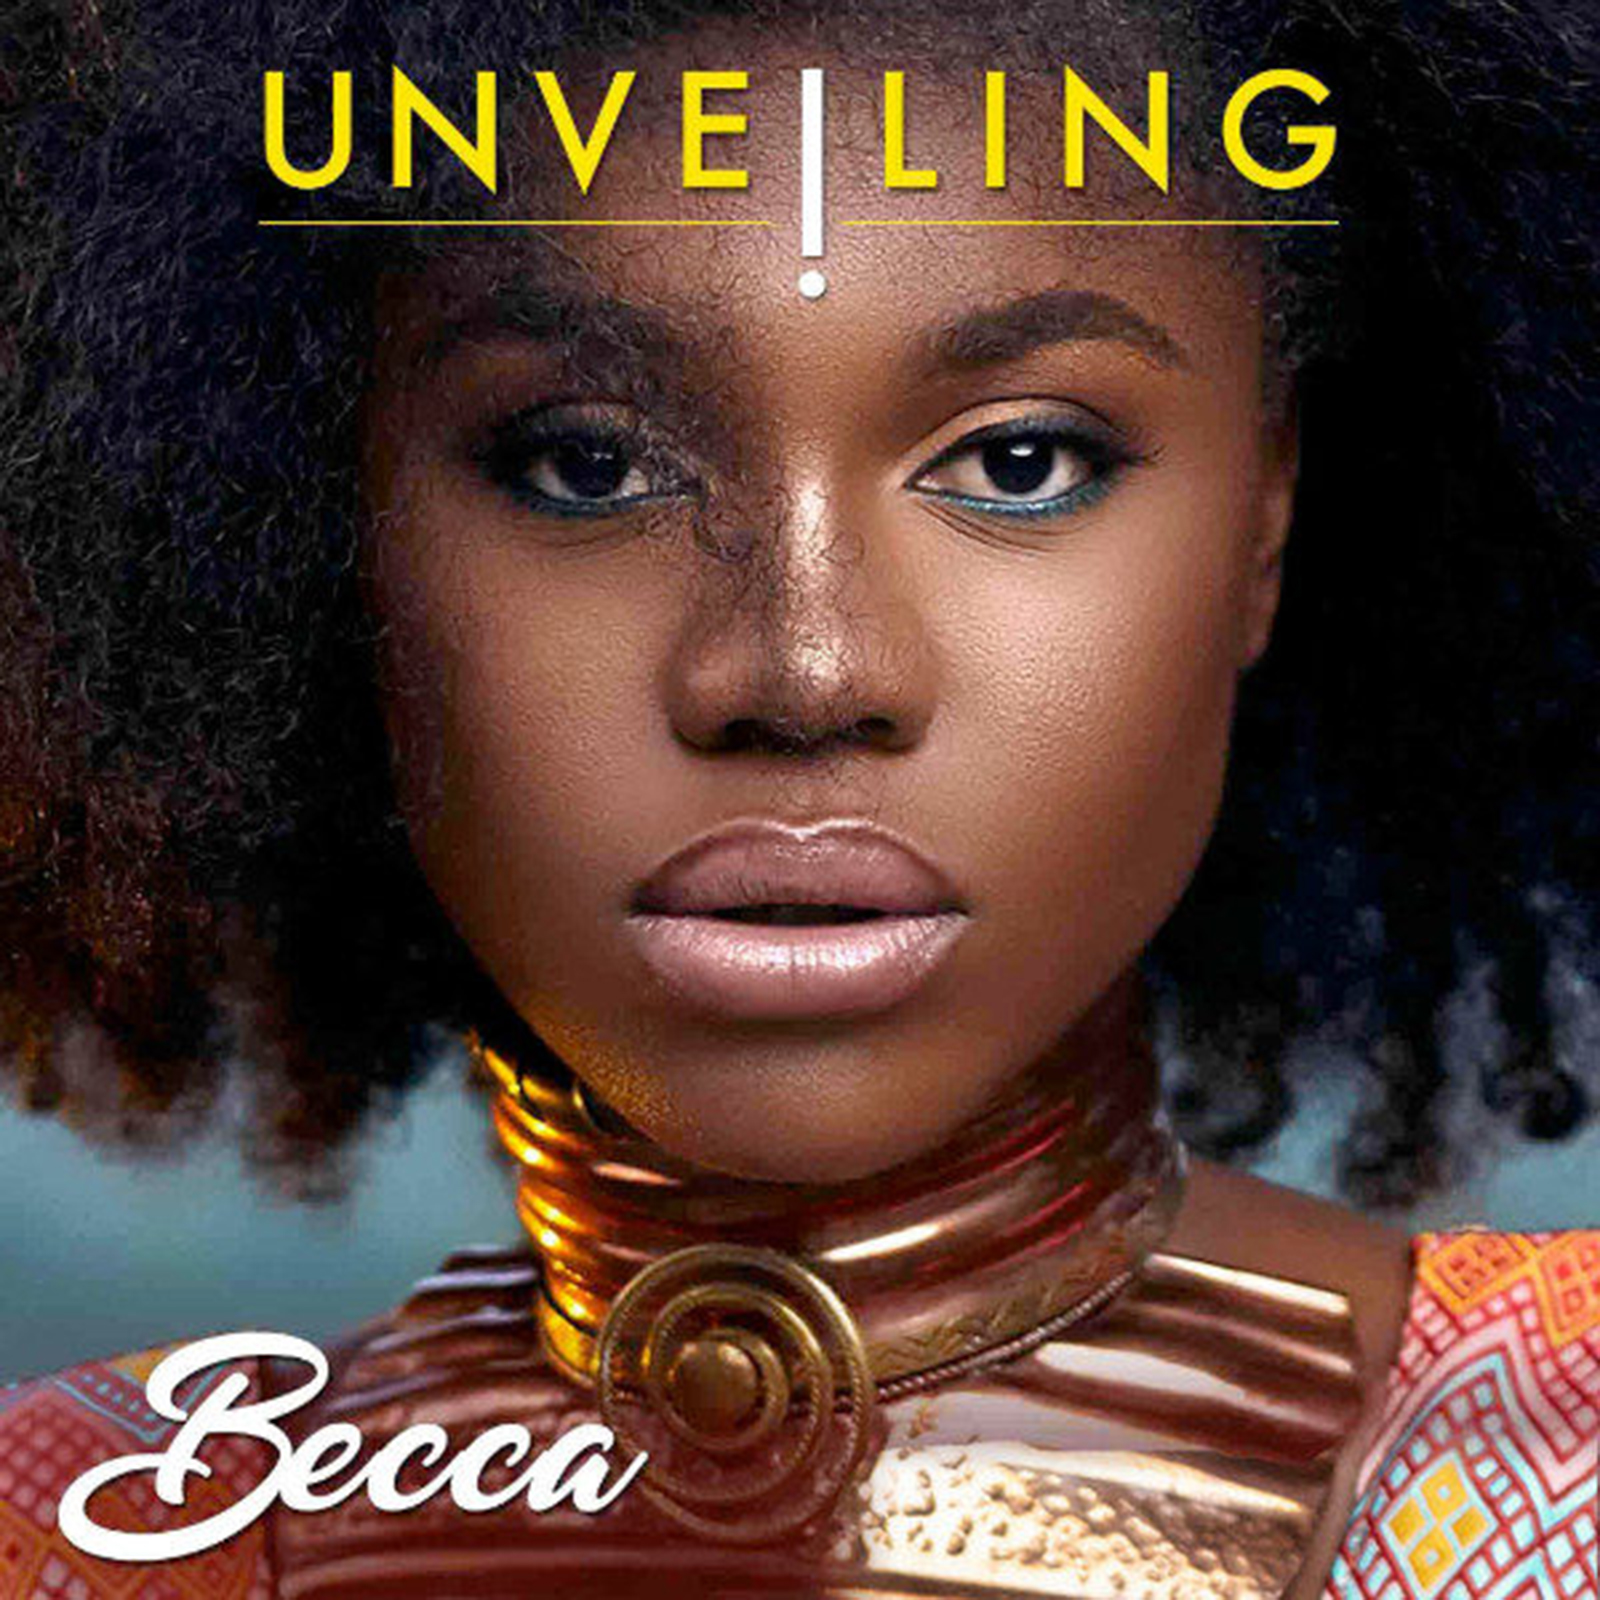 Album Review: We unveil Becca's Unveiling album